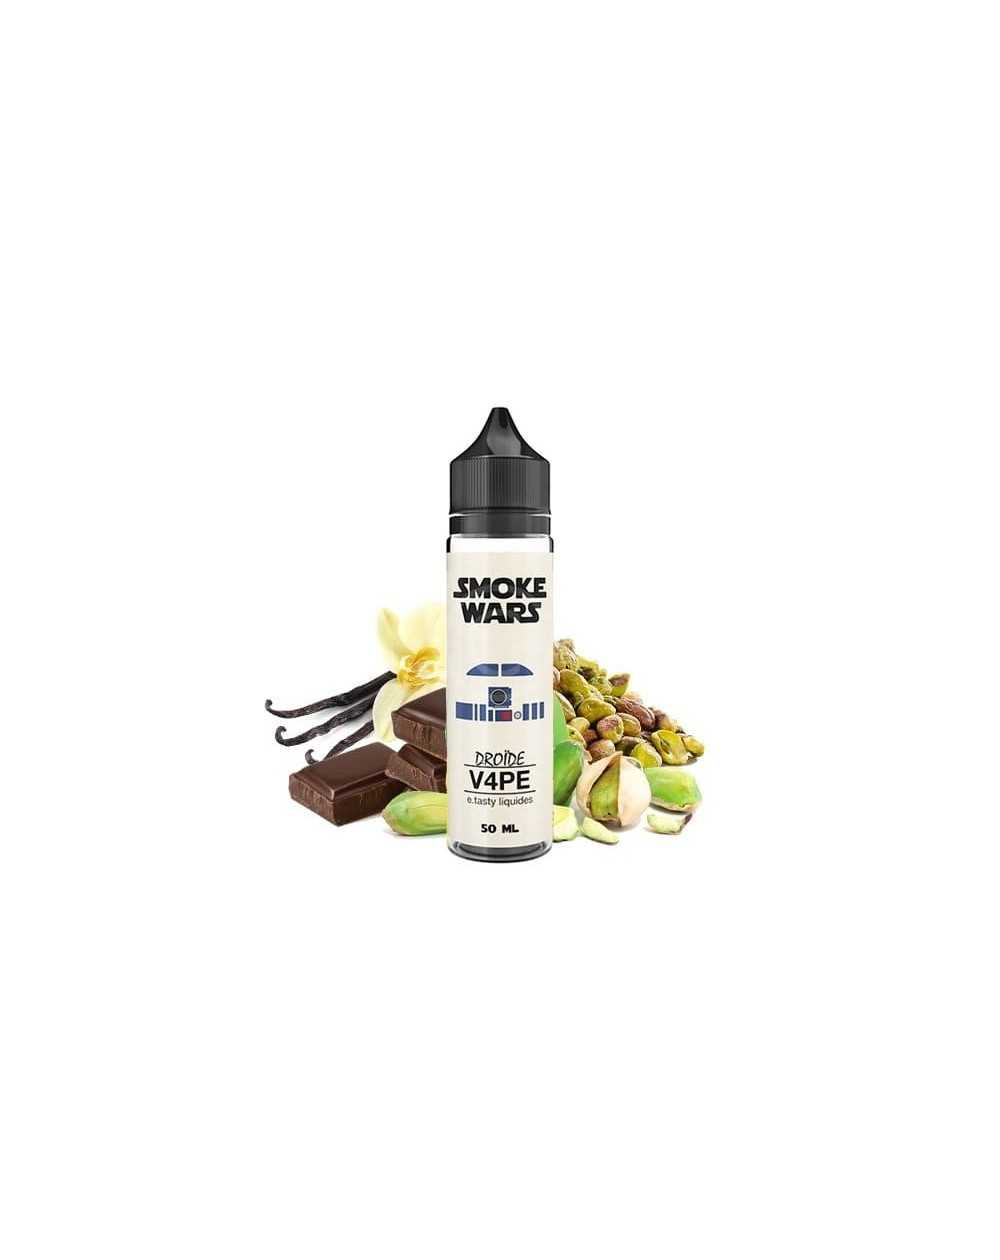 Eliquid Droïde V4PE 50ml - Smoke Wars by e.Tasty-1